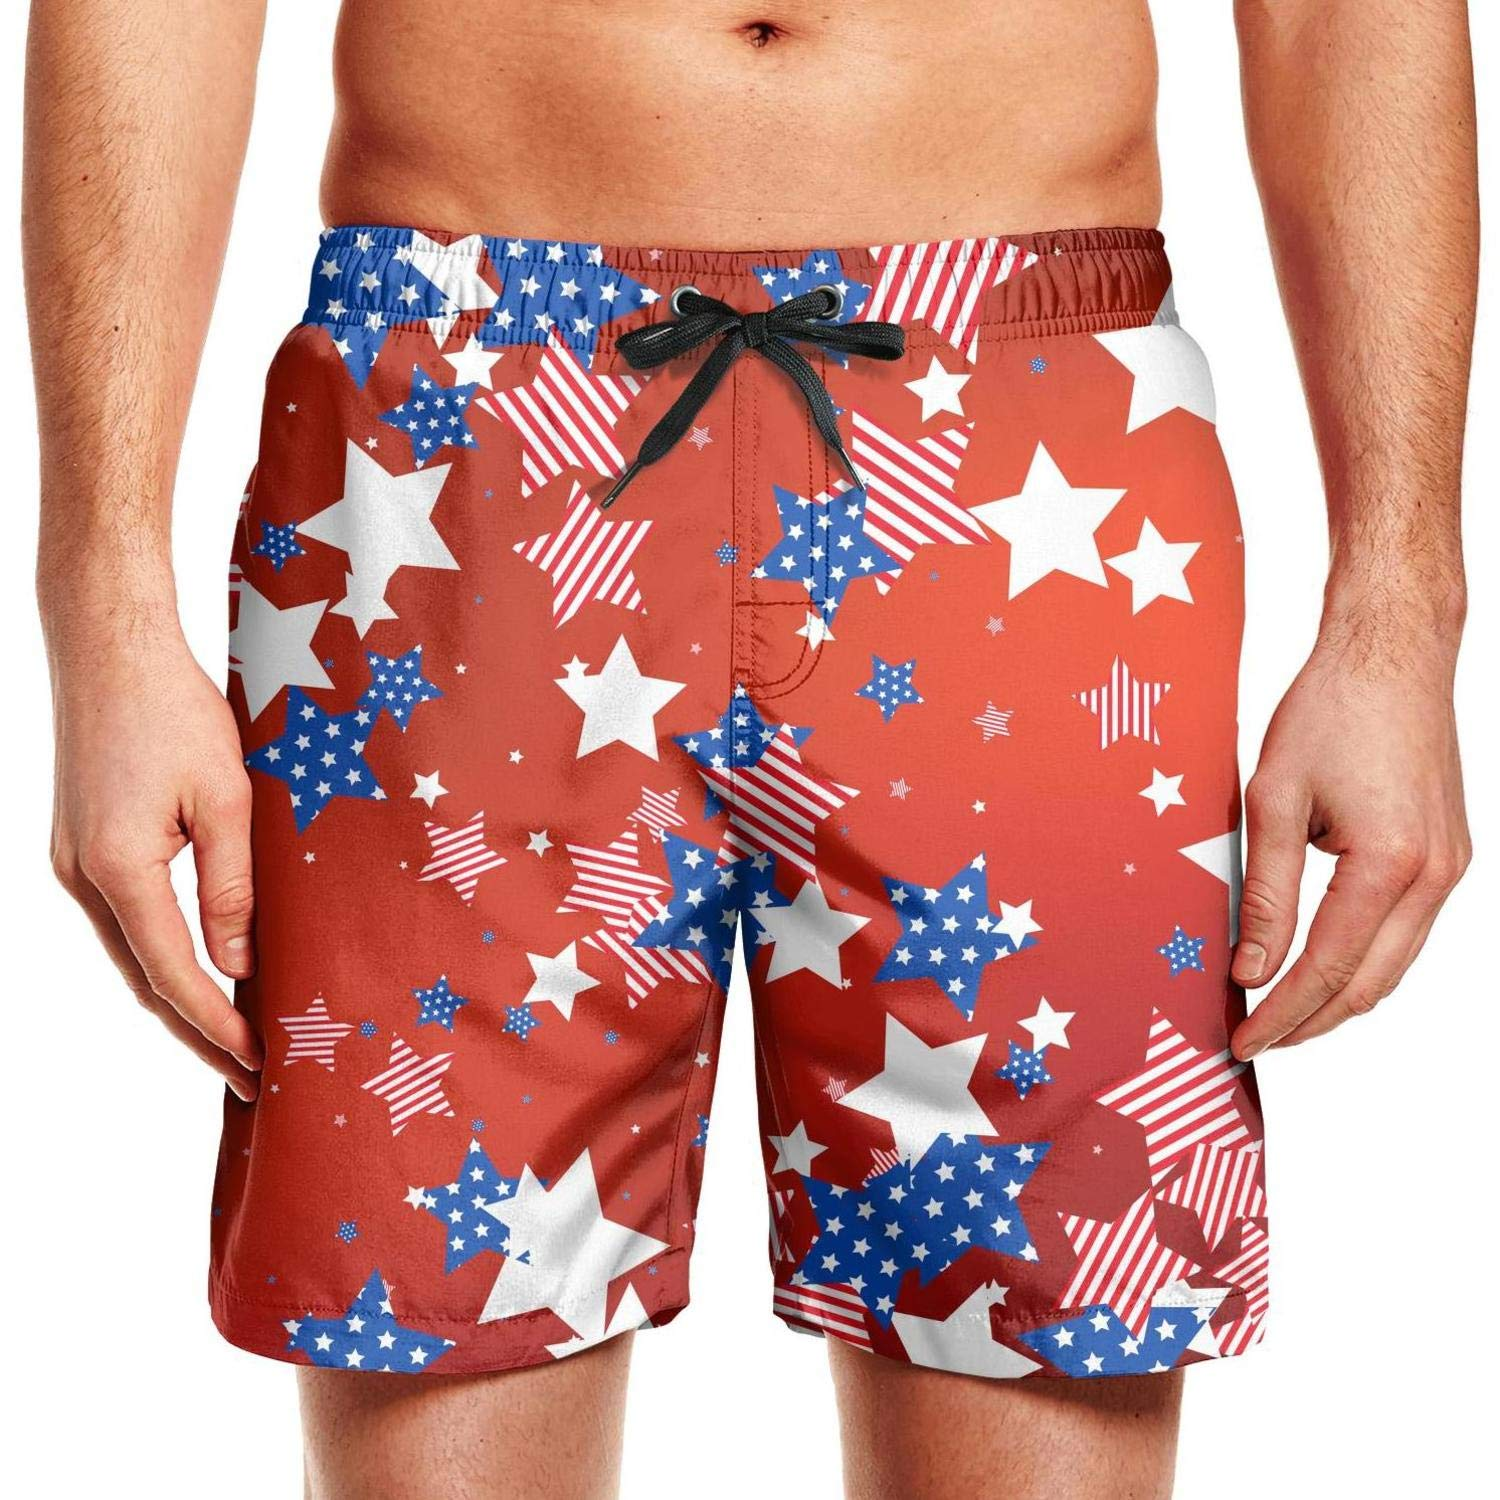 Quick-Dry Mens Beach Shorts Colors Stars of American Flag Swim Trunks with Adjustable Drawstring